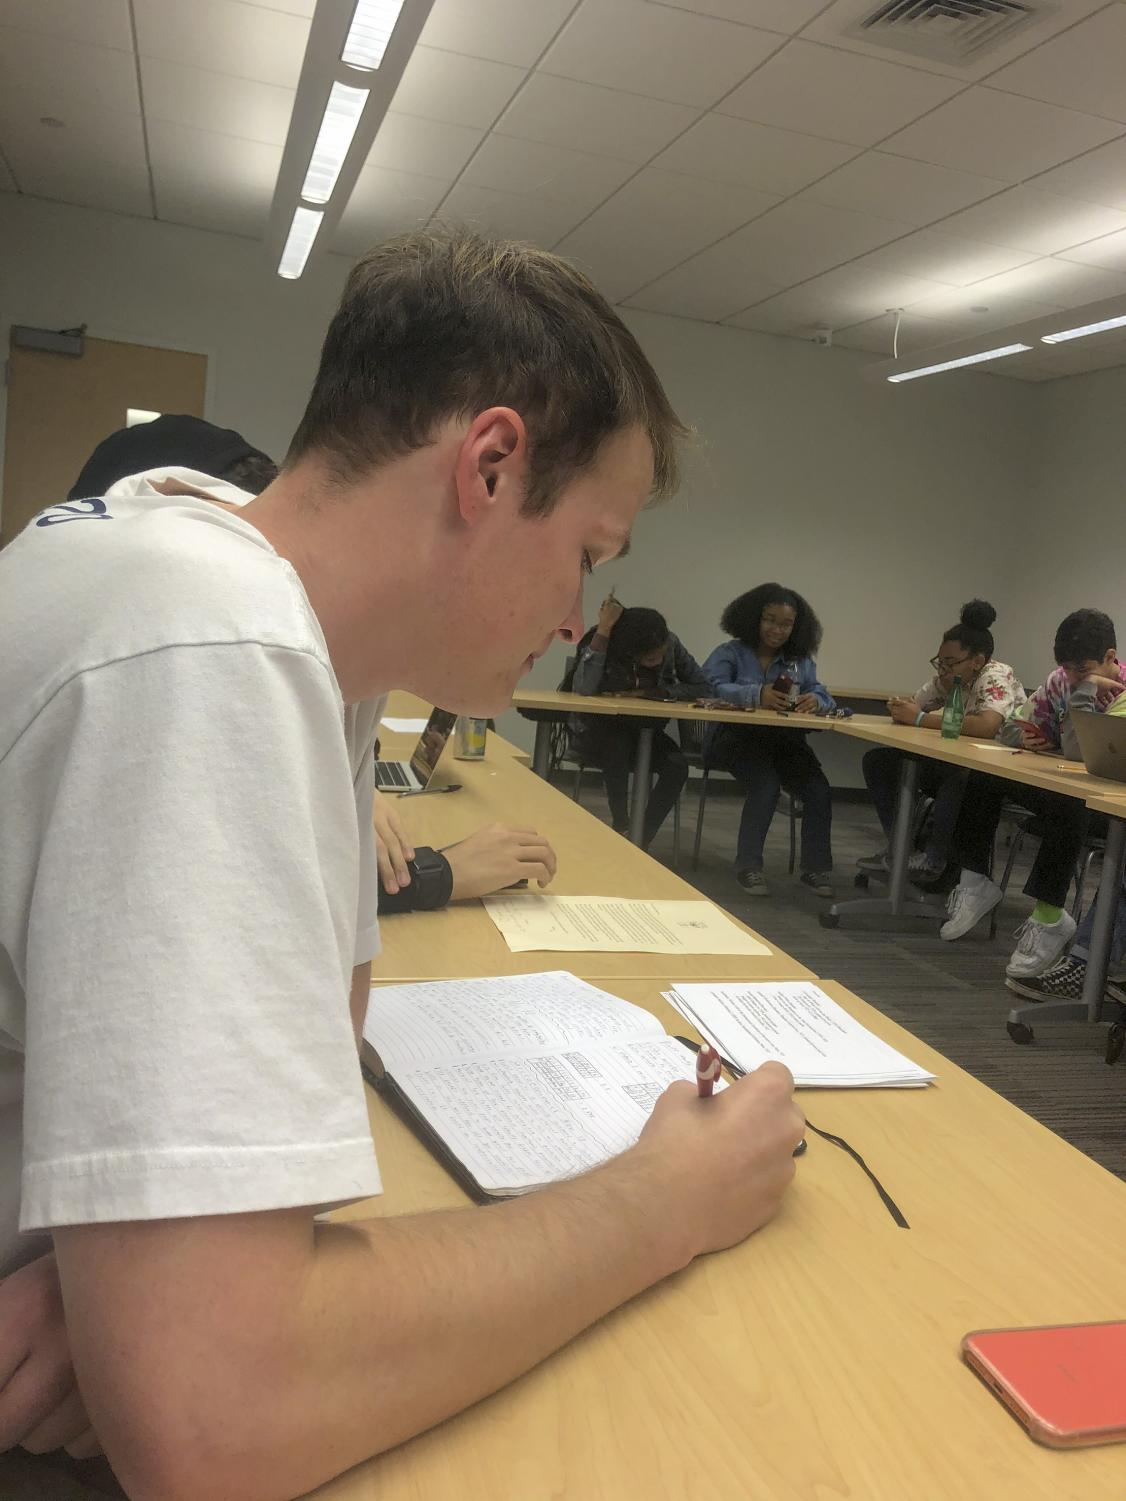 Caleb Kinneman, finance freshman, takes notes in his American Empire class. Kinneman uses personal anecdotes of his time in the Pacific to support his point in class discussion. Photo credit: Rae Walberg